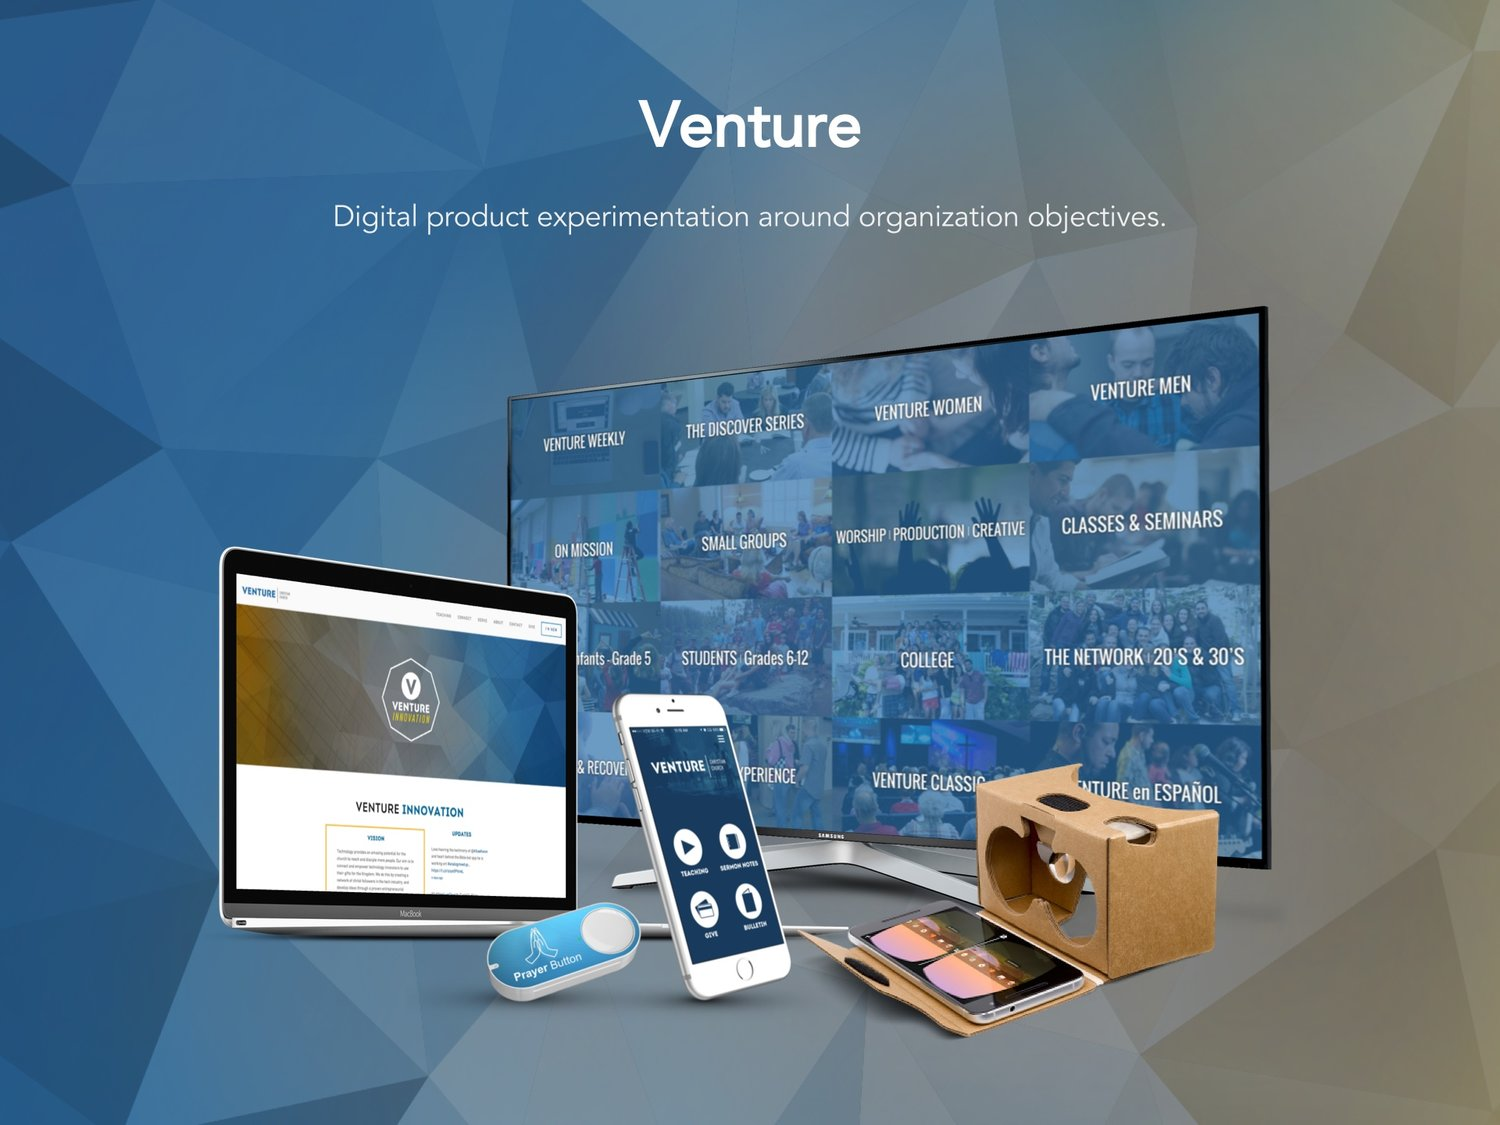 With campus attendance maxed out and still growing, Venture wanted to extend its reach into new digital realms.